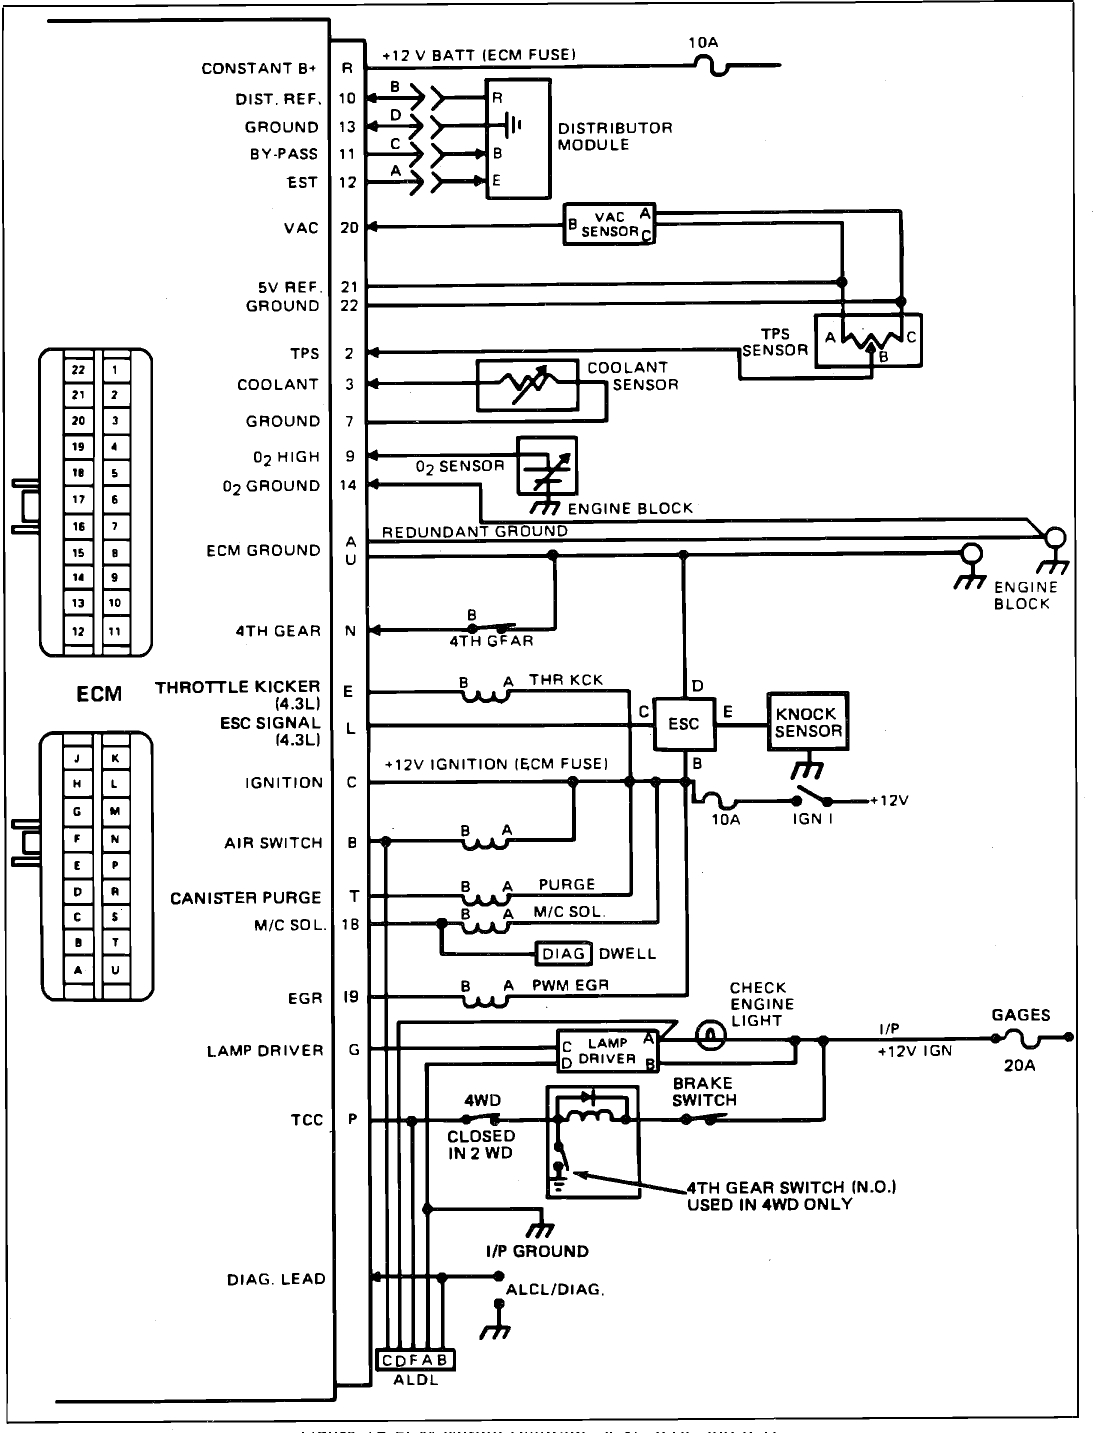 1977 chevy ac compressor wiring diagram online schematics diagram rh  delvato co Compressor Motor Wiring Diagram